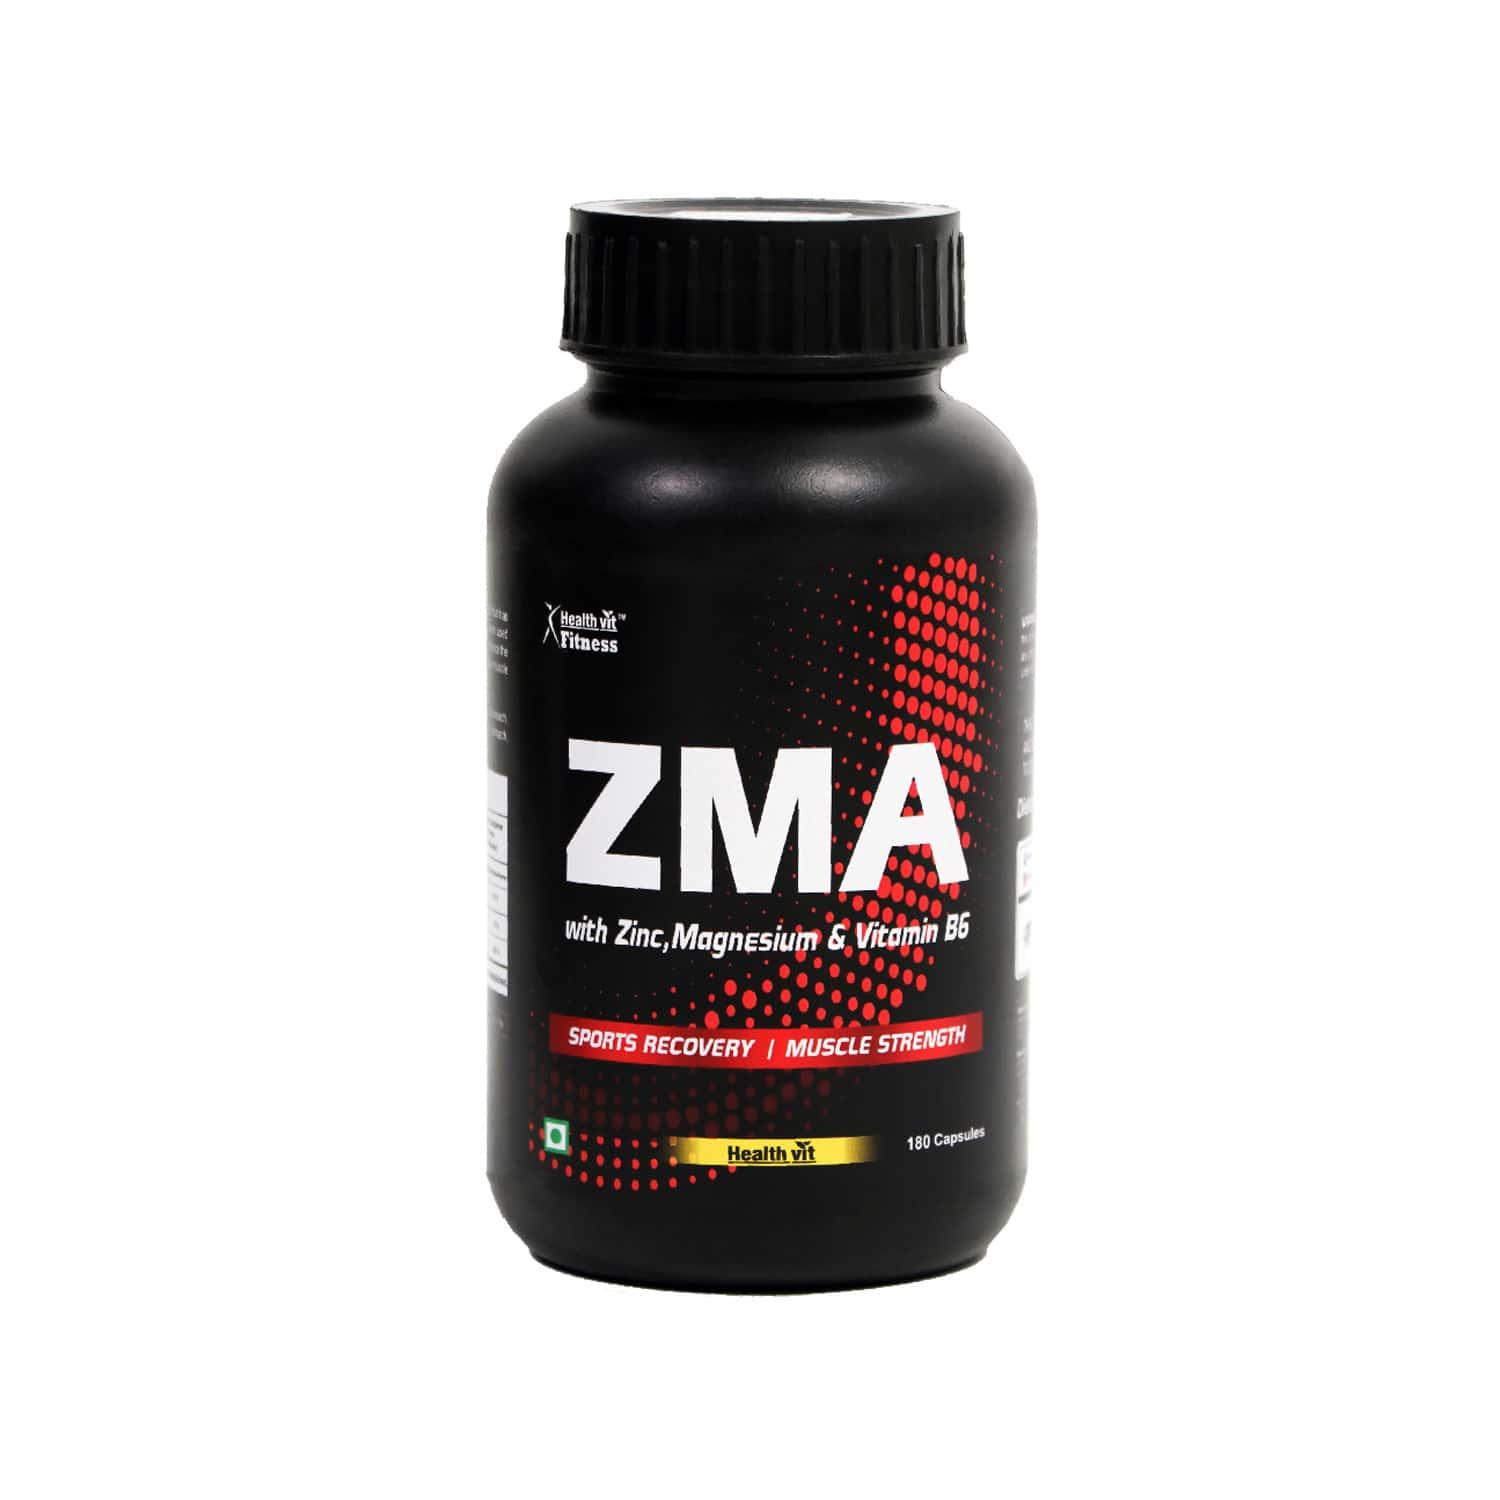 Healthvit Fitness Zma ( Zinc, Magnesium Aspartate, Vitamin B6 ) For Sports Recovery & Muscle Strength - 180 Capsules